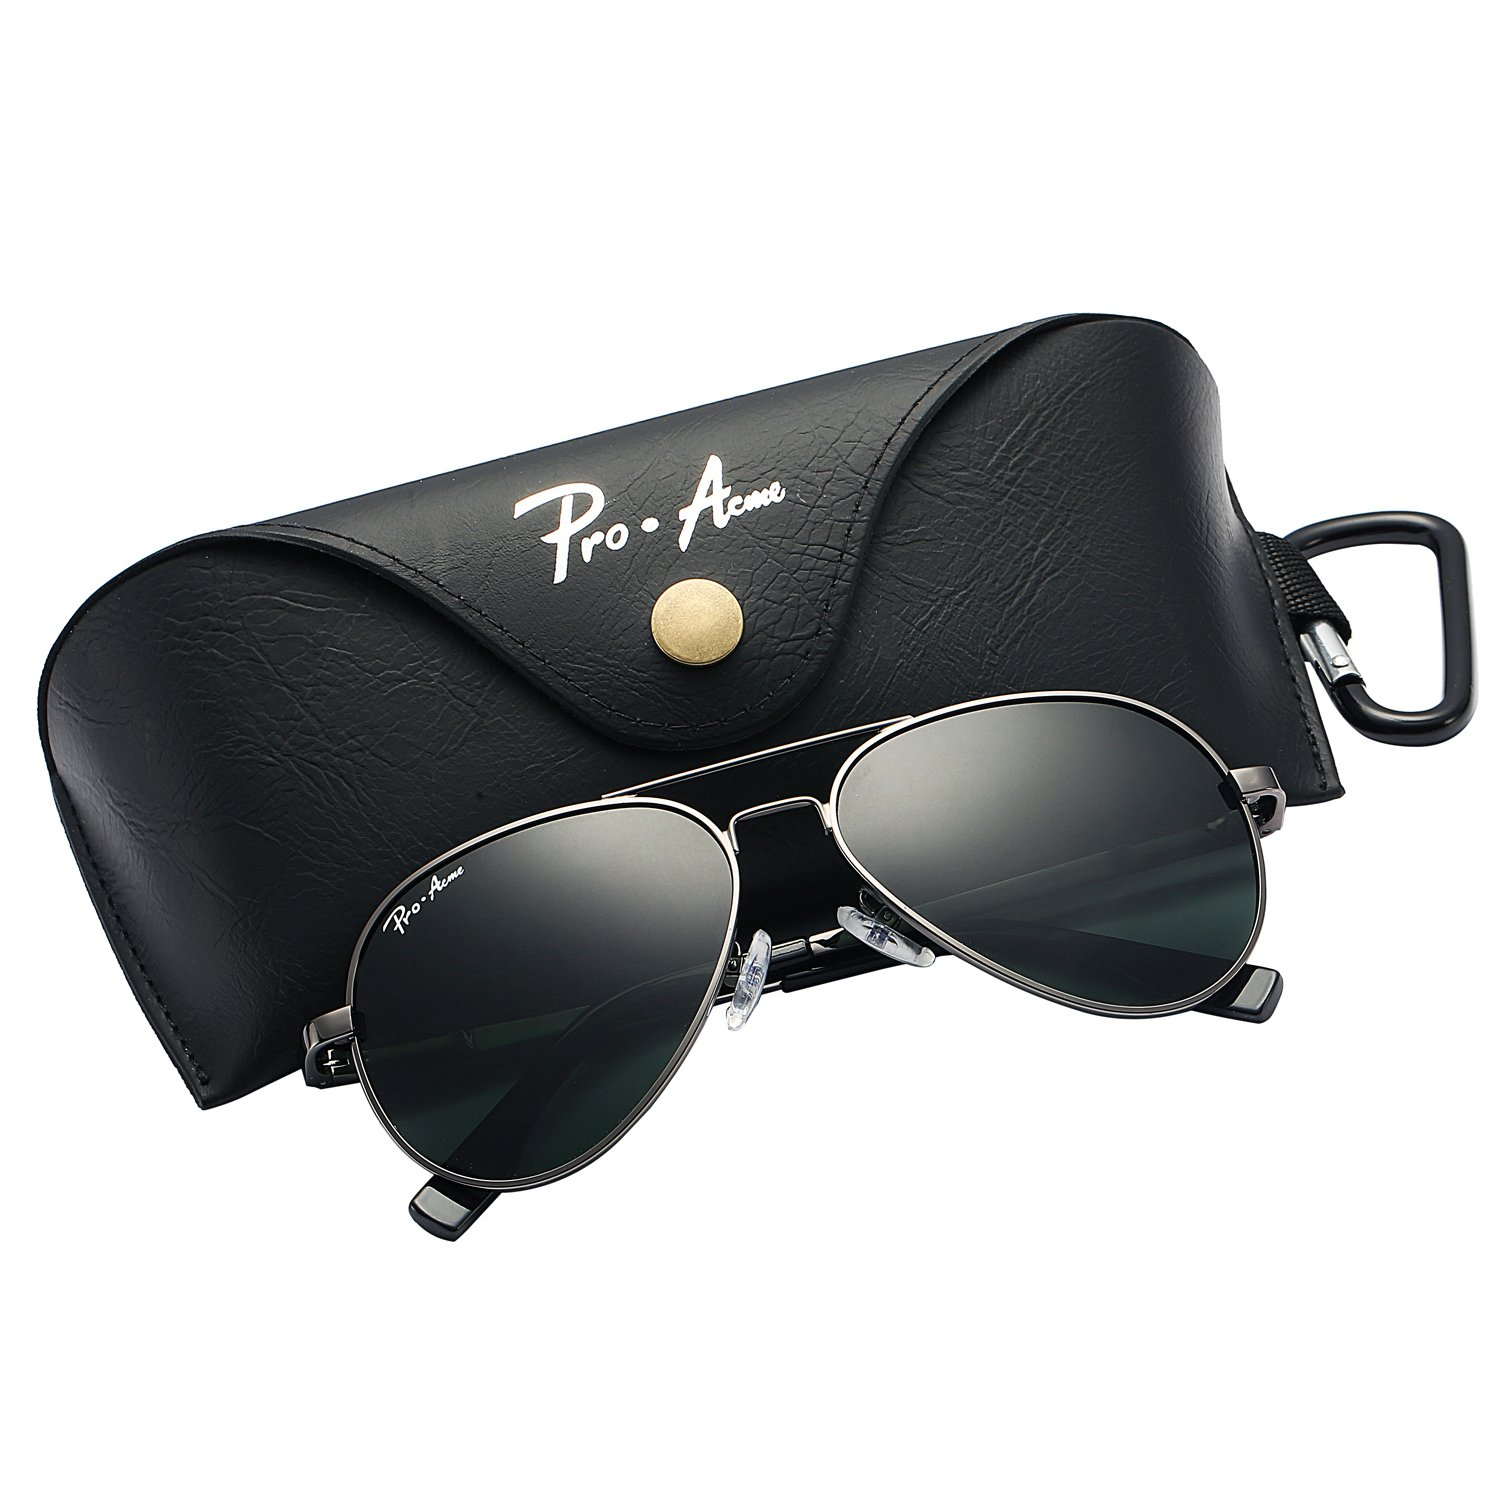 Pro Acme Small Polarized Aviator Sunglasses for Kids and Youth Age 5-18 (Gunmetal Frame/G15 Lens)